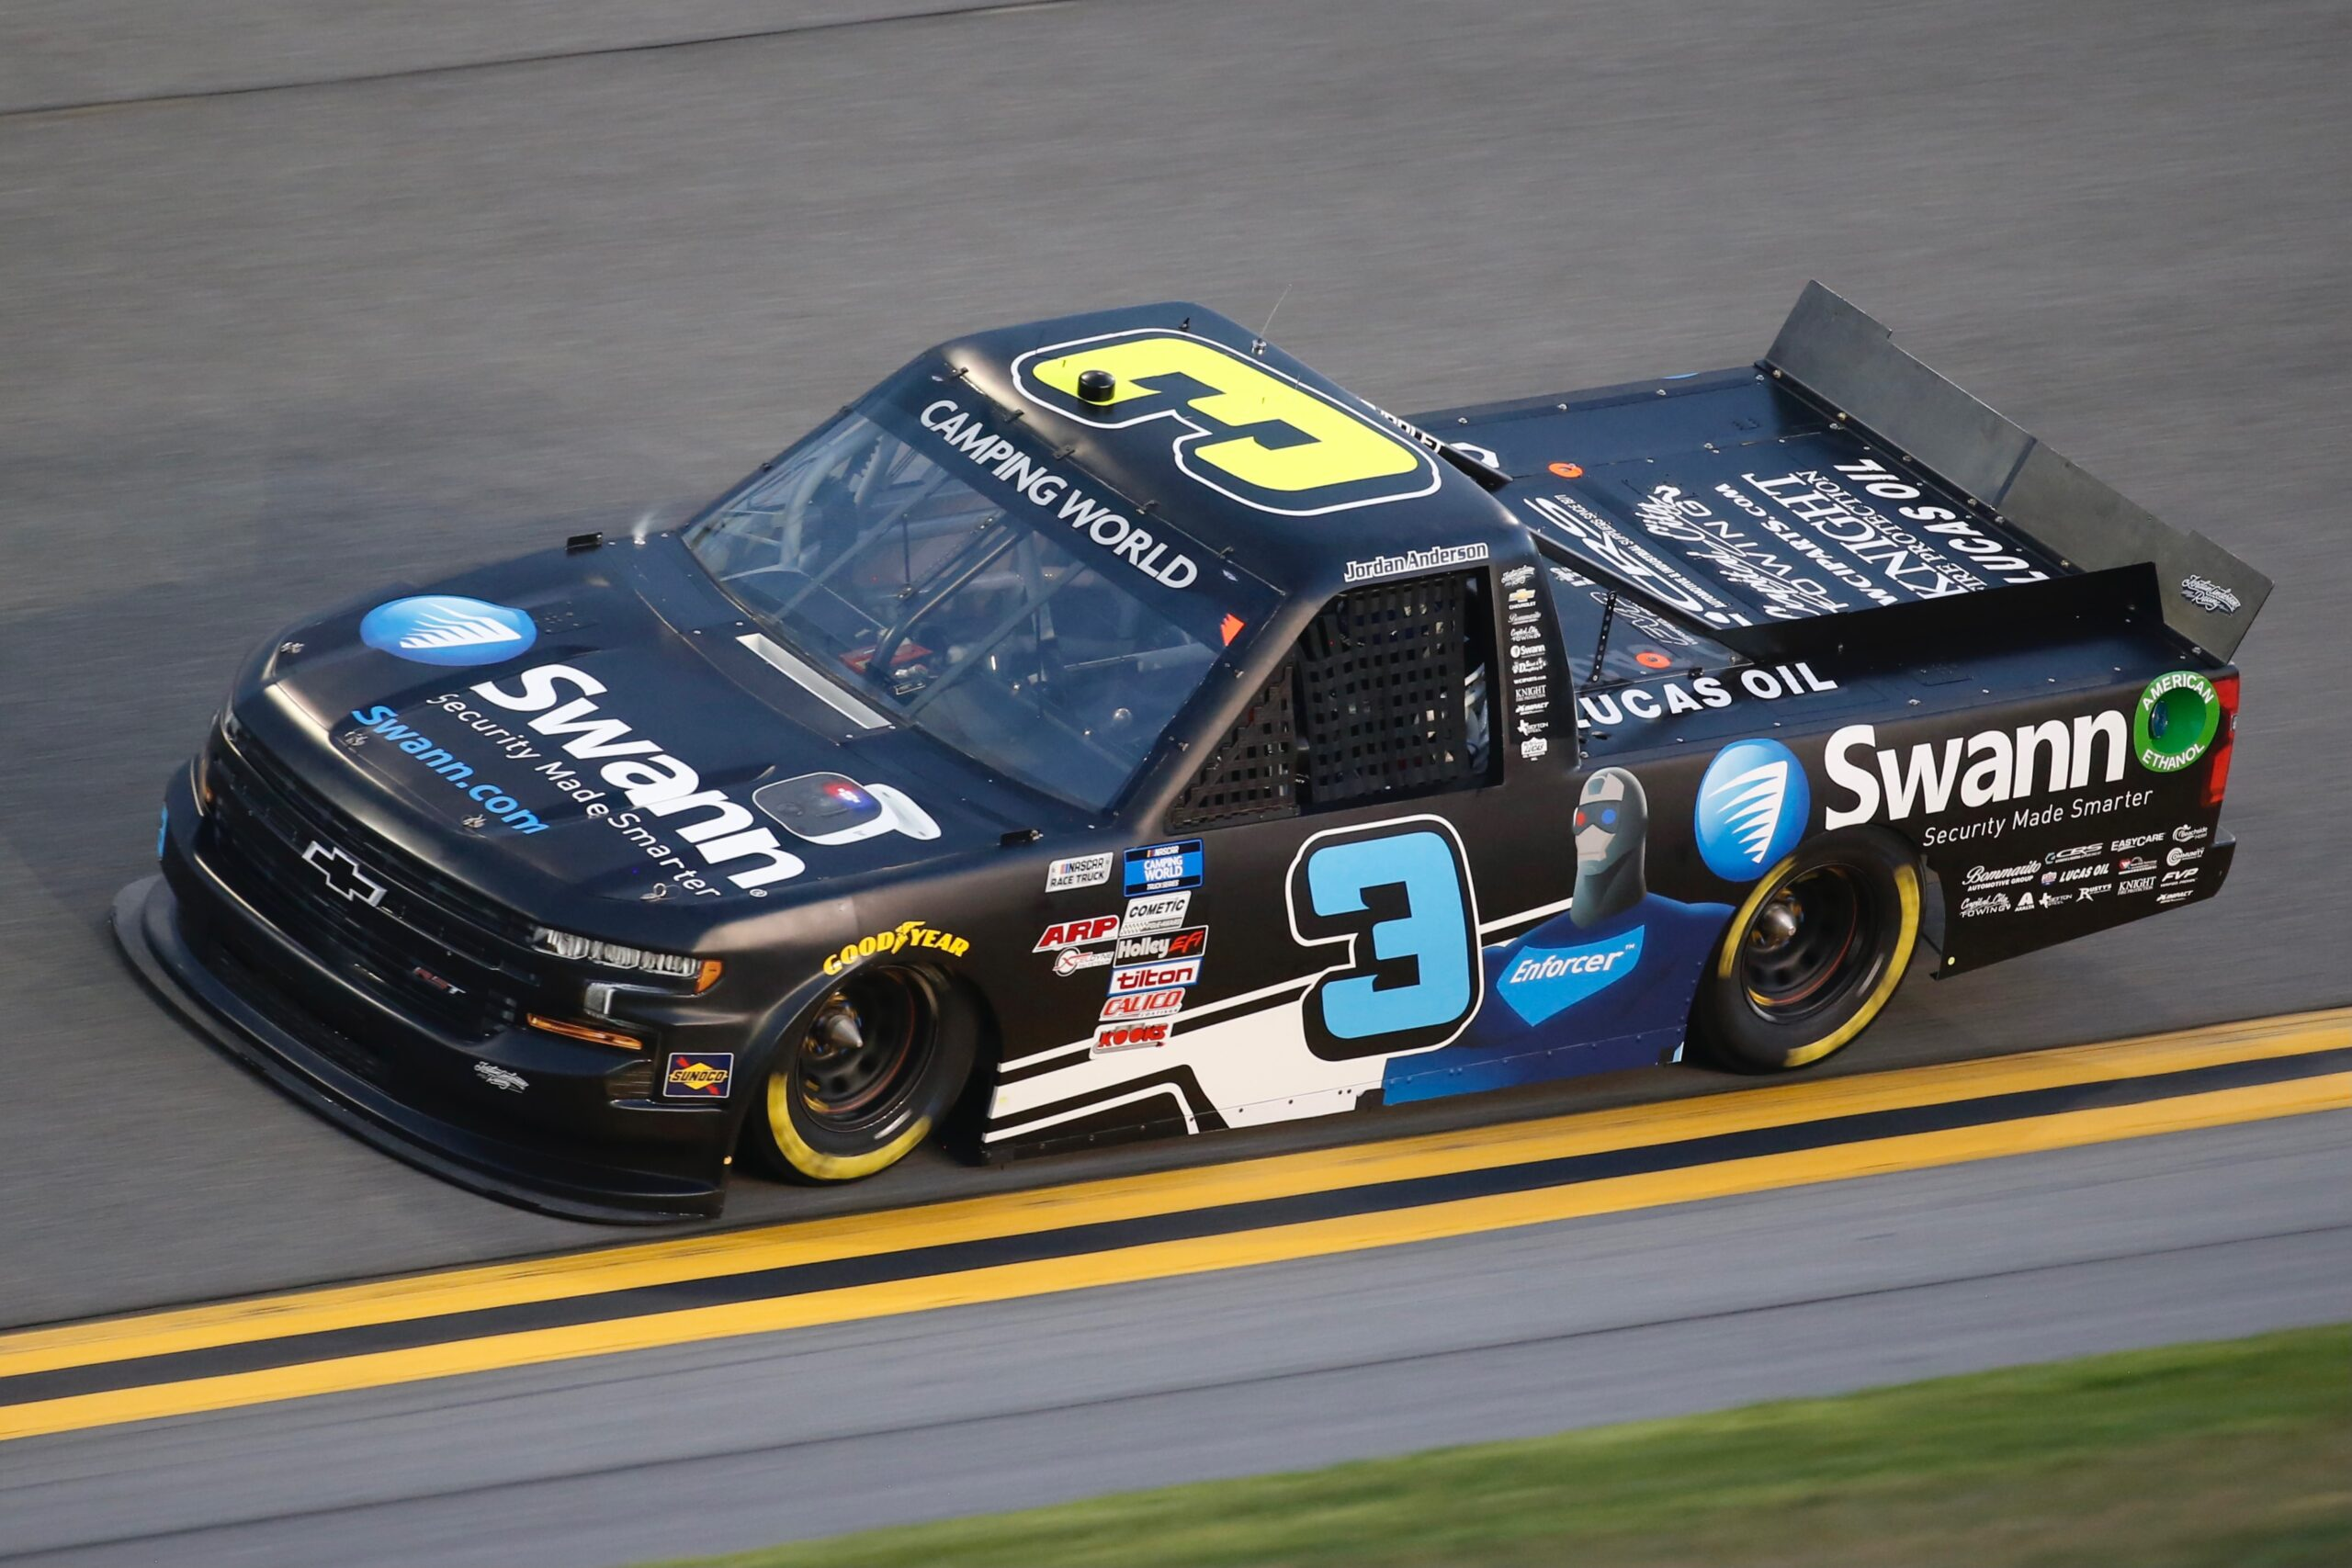 NOW AVAILABLE FOR ORDER; 2021 Jordan Anderson No. 3 Swann Security Chevrolet Silverado Daytona Race Version Diecast